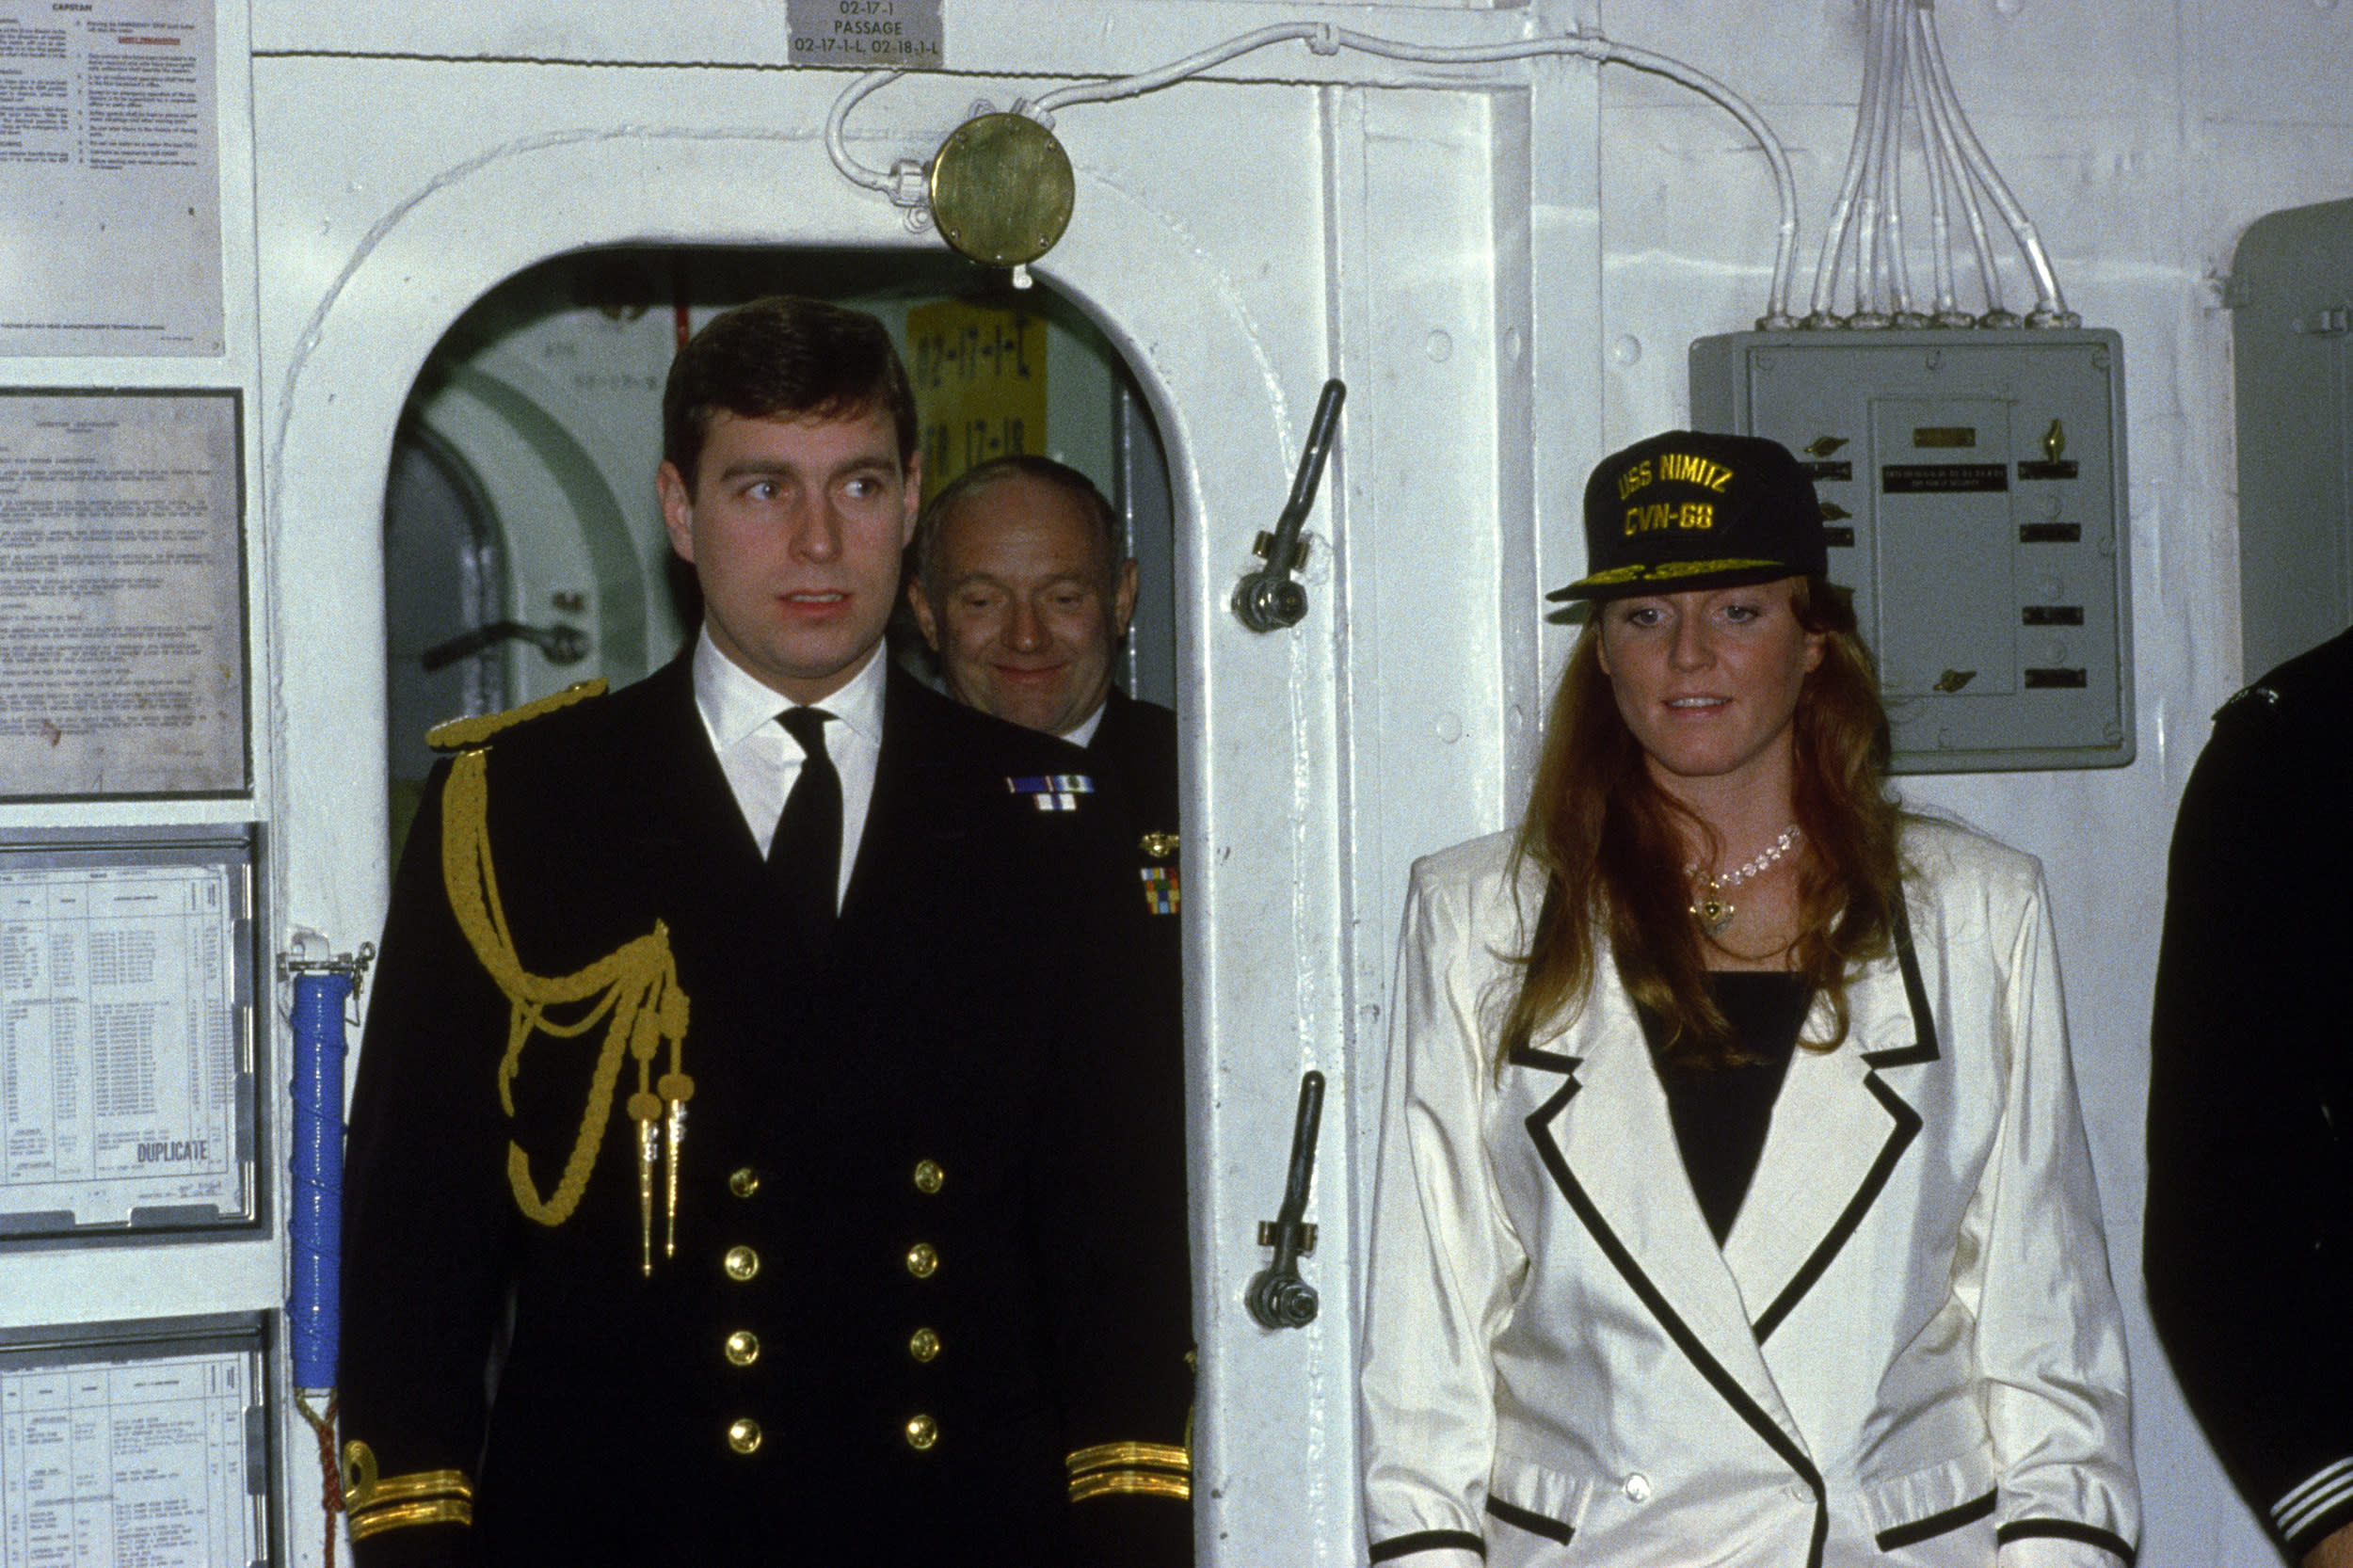 The Duke and Duchess of York during a tour of USS Nimitz, on their 'Buy British' tour of California.